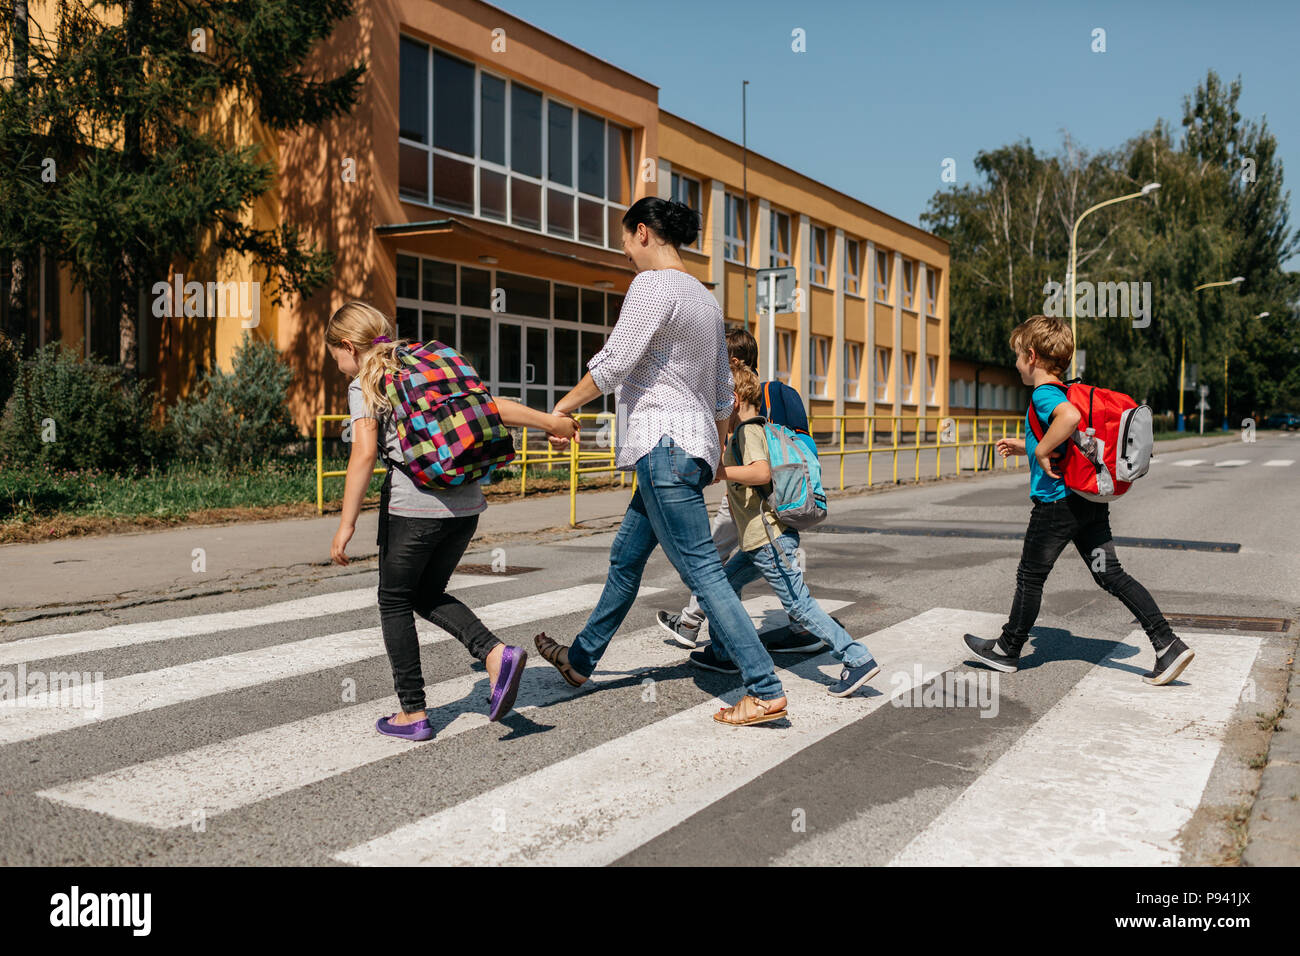 Back to school - a group of children walking across a zebra crossing with an adult. Rear view of children and their mother crossing a street. - Stock Image